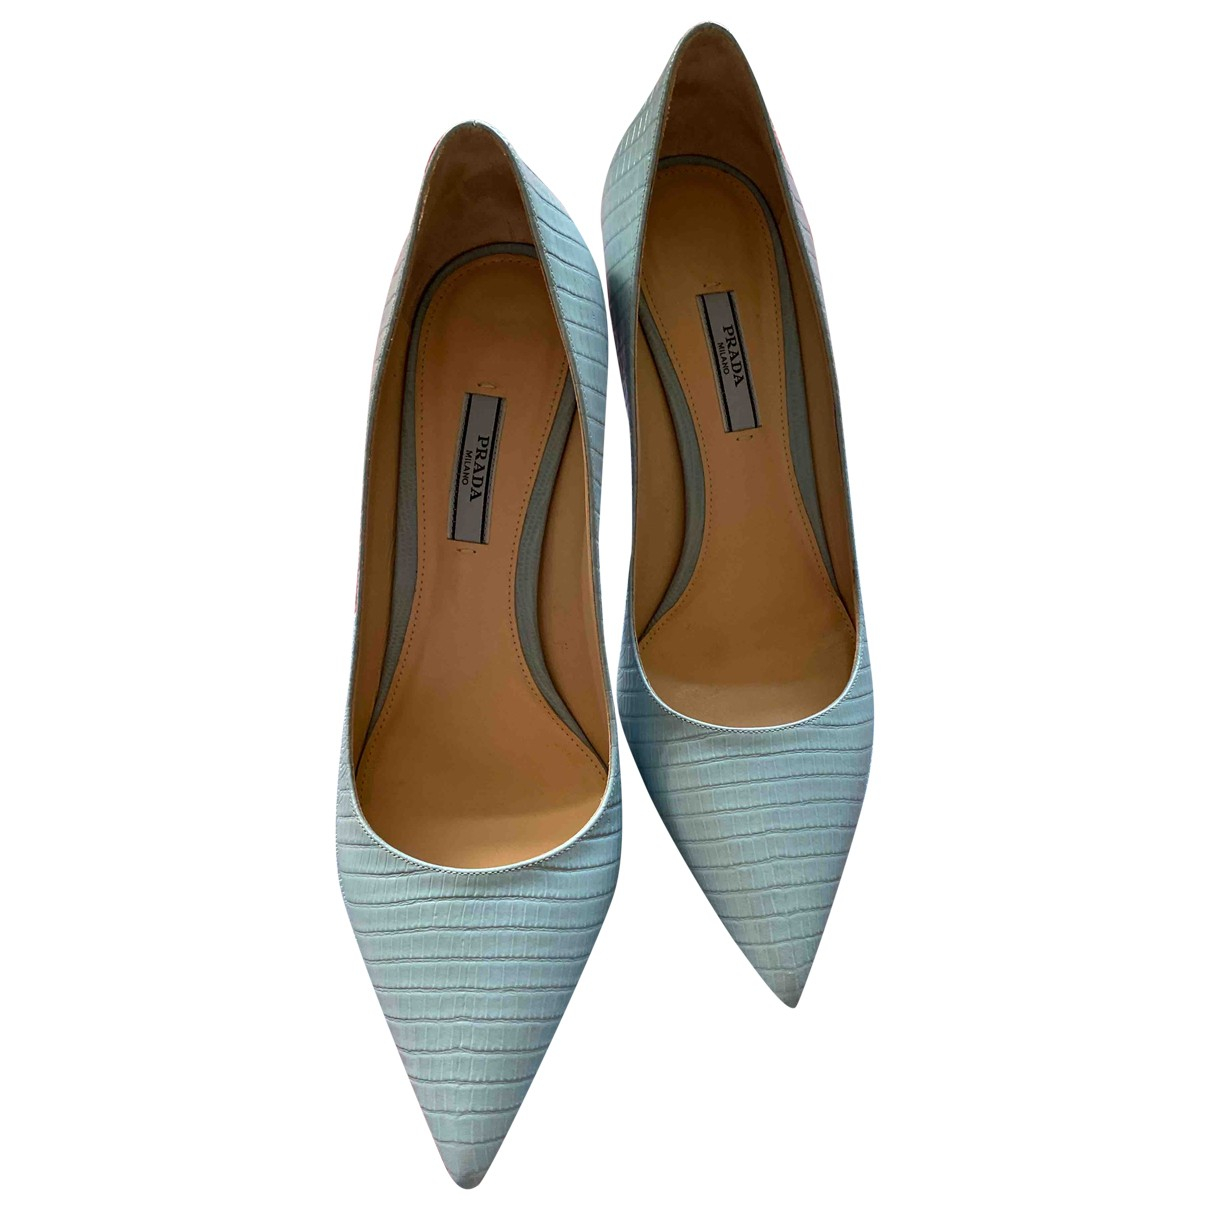 Prada \N Pumps in  Blau Leder